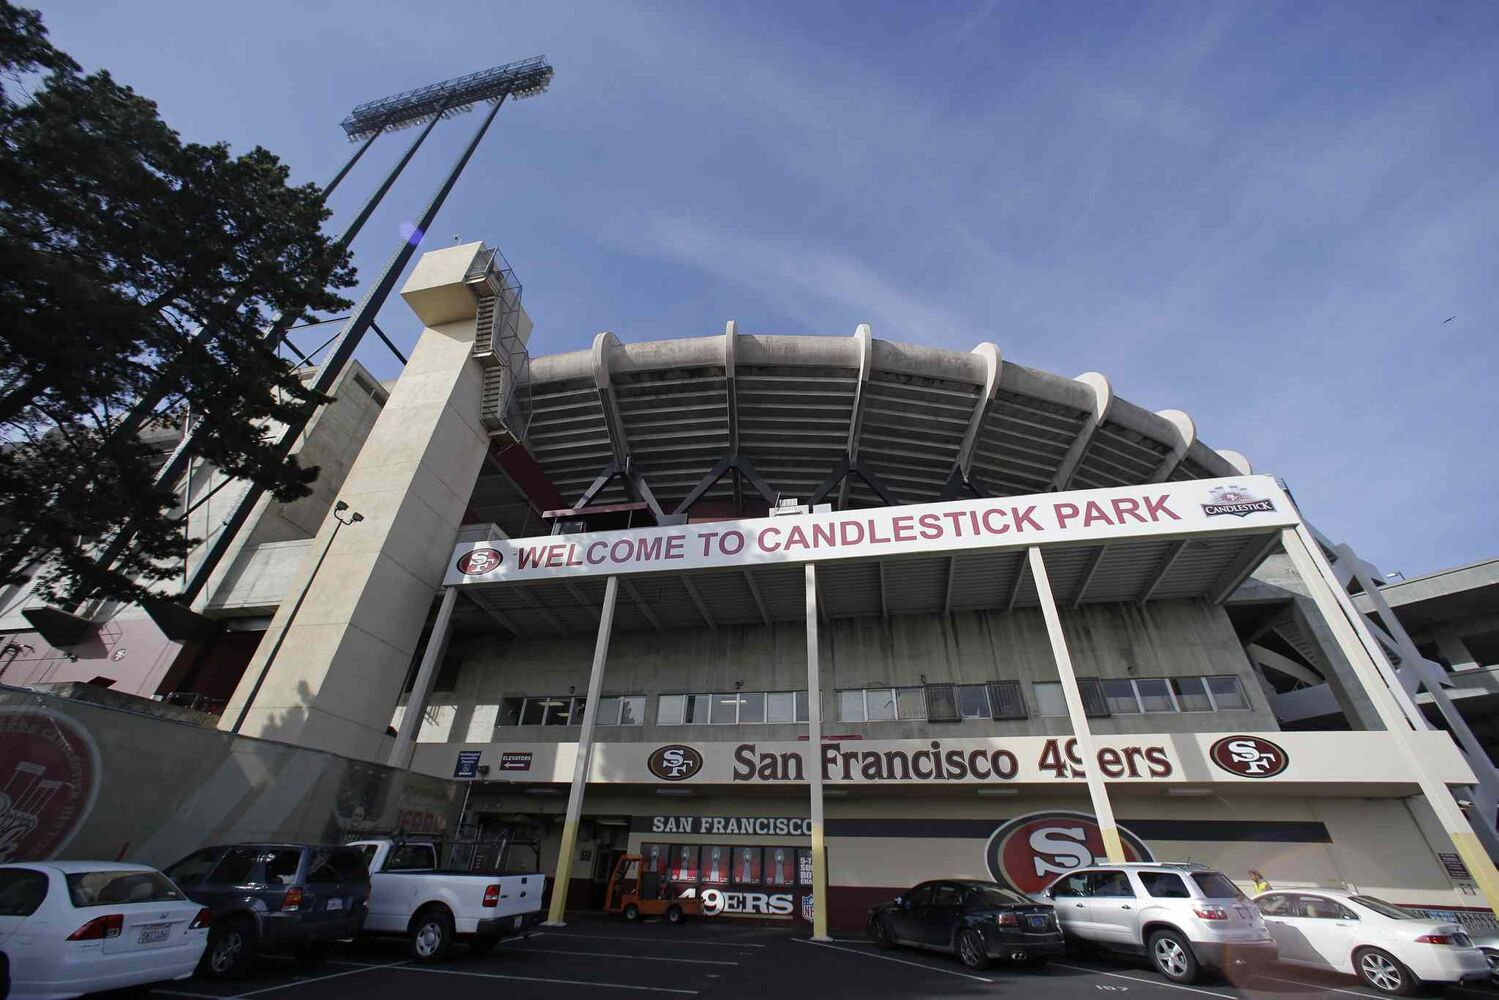 The players' entrance at Candlestick Park in San Francisco is seen from outside the building. (Eric Risberg / The Associated Press)